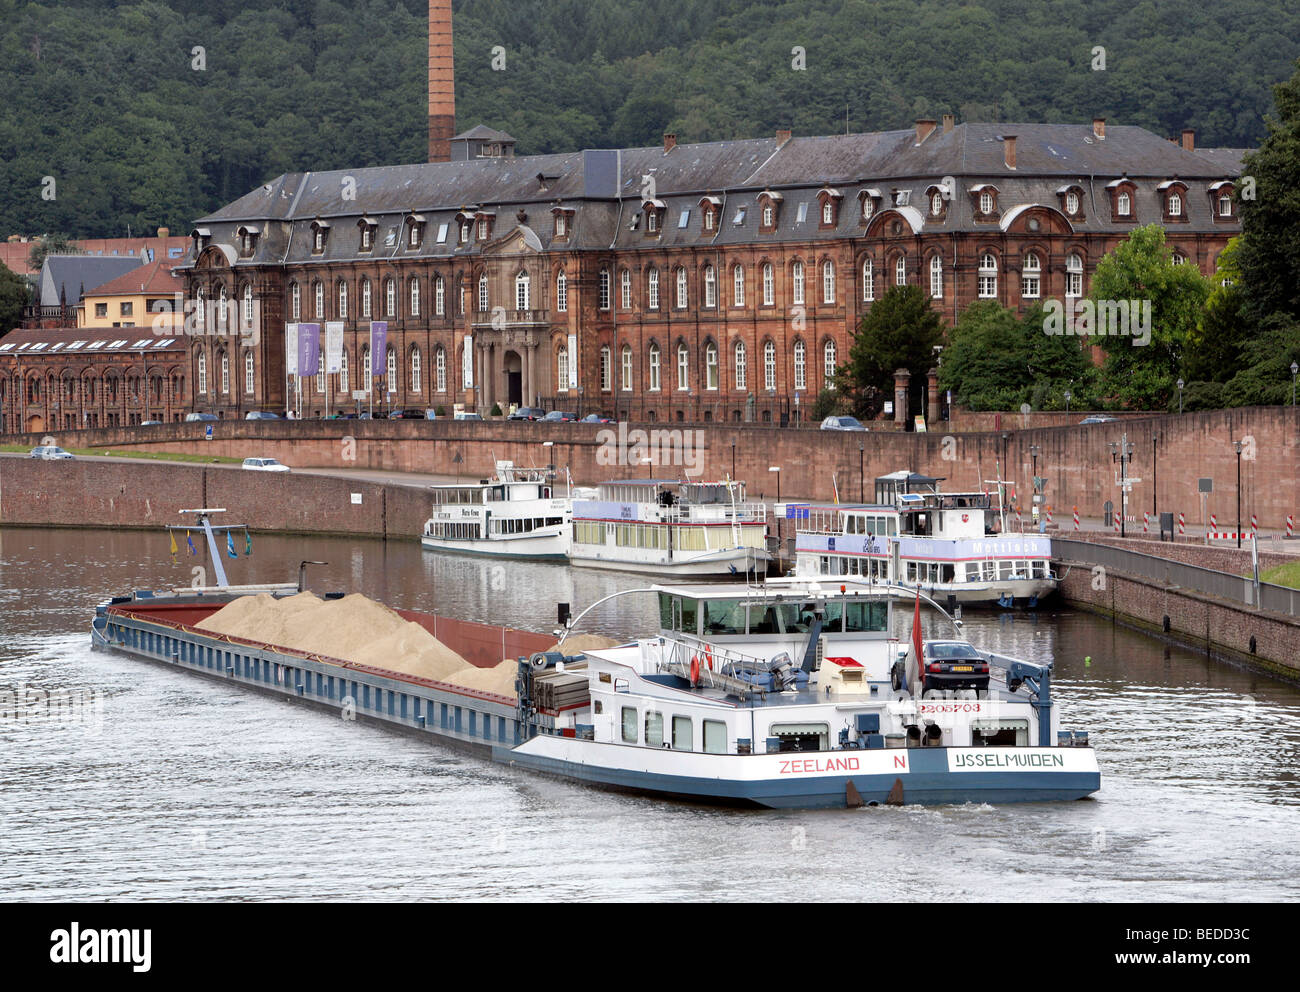 Villeroy Und Boch Saarland Vessel On The River Saar In Front Of The Headquarters Of The